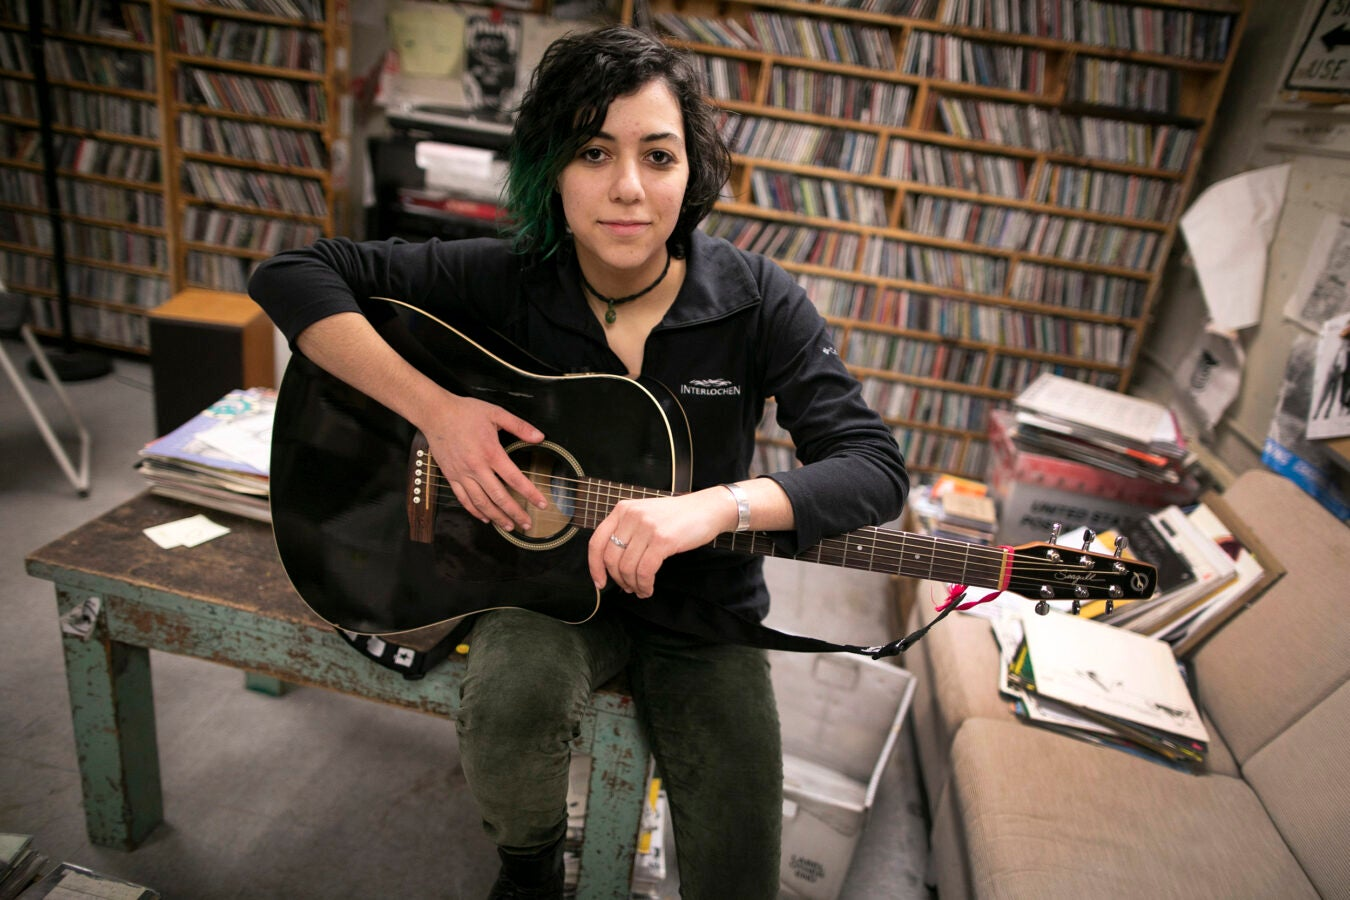 Emily Spector is pictured in the WHRB studio with her guitar.